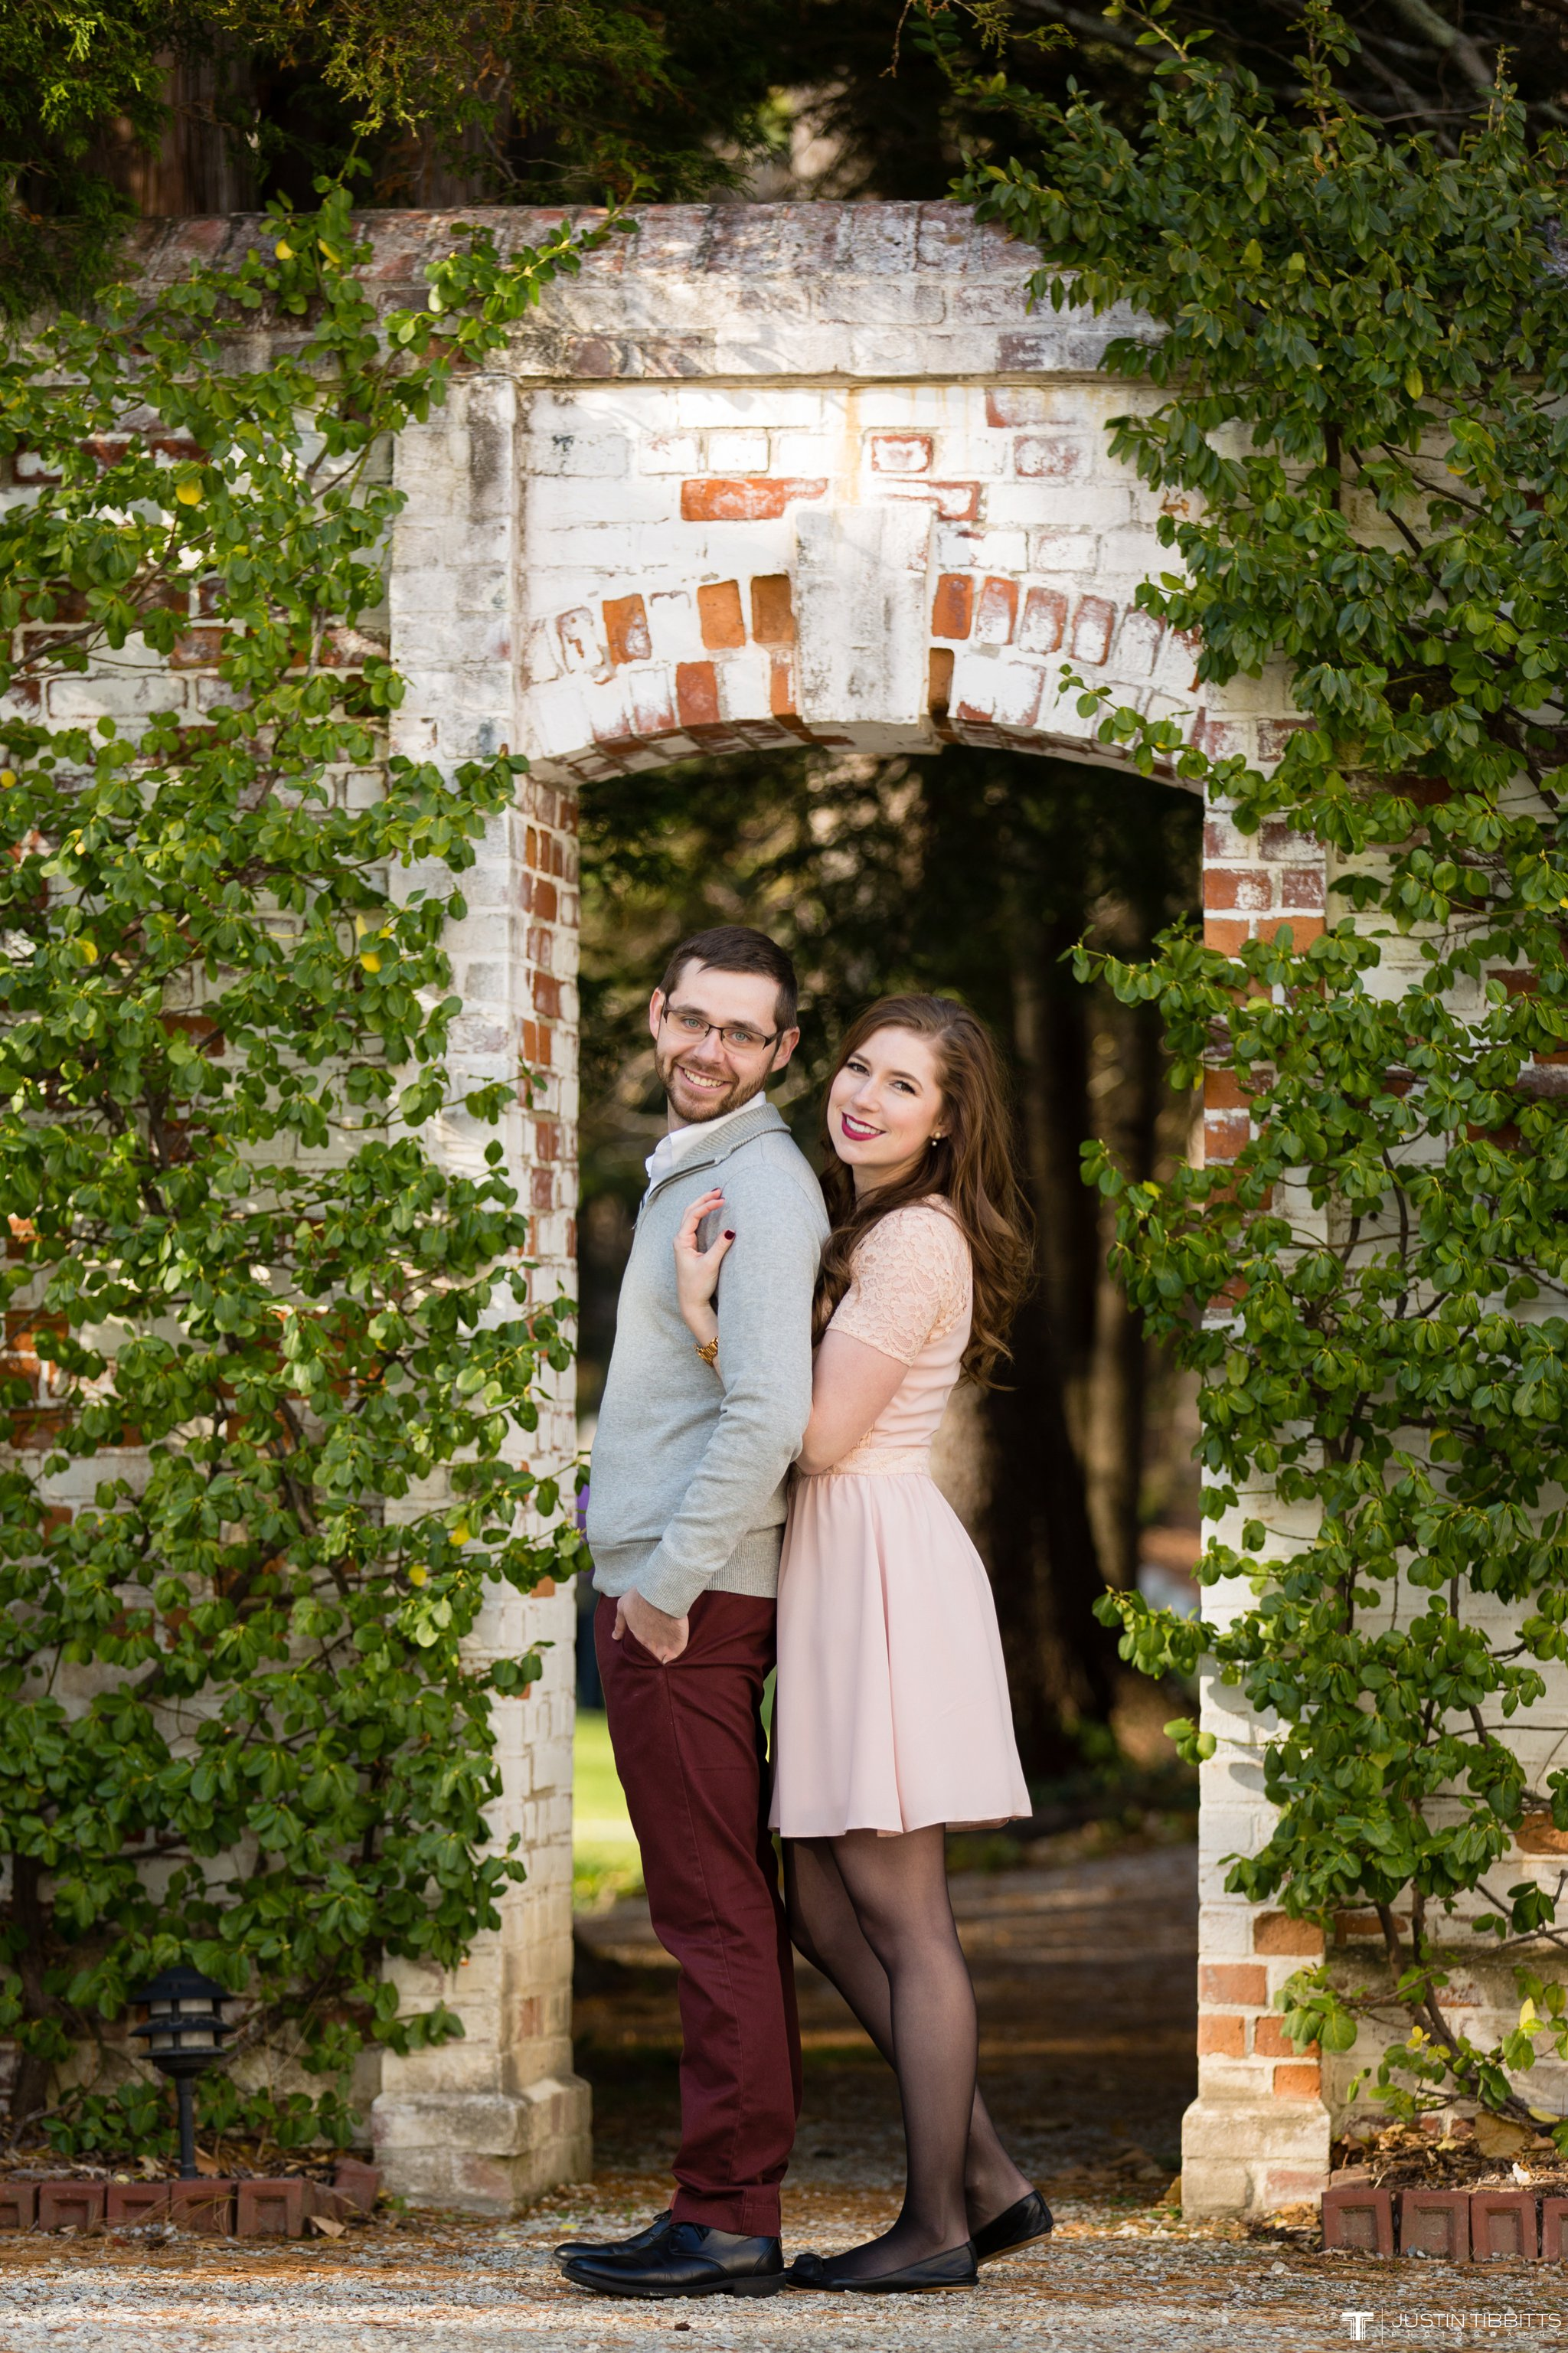 Amber and Zack's Engagement Shoot at The Mount, Lenox MA_0001